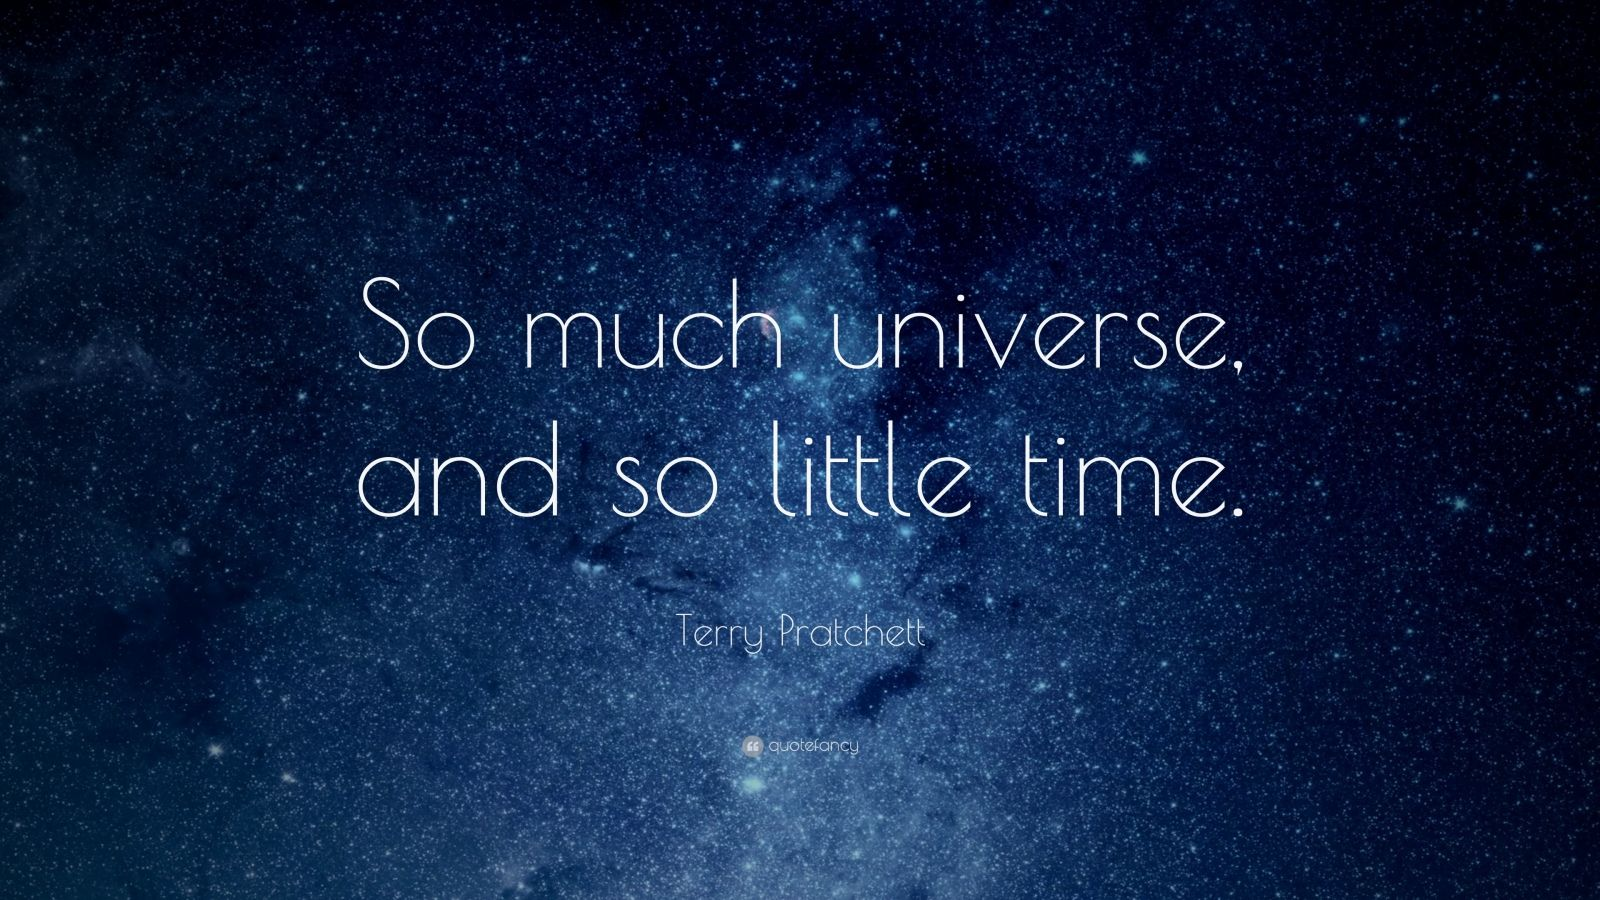 Vincent Van Gogh Quotes Wallpaper Terry Pratchett Quote So Much Universe And So Little